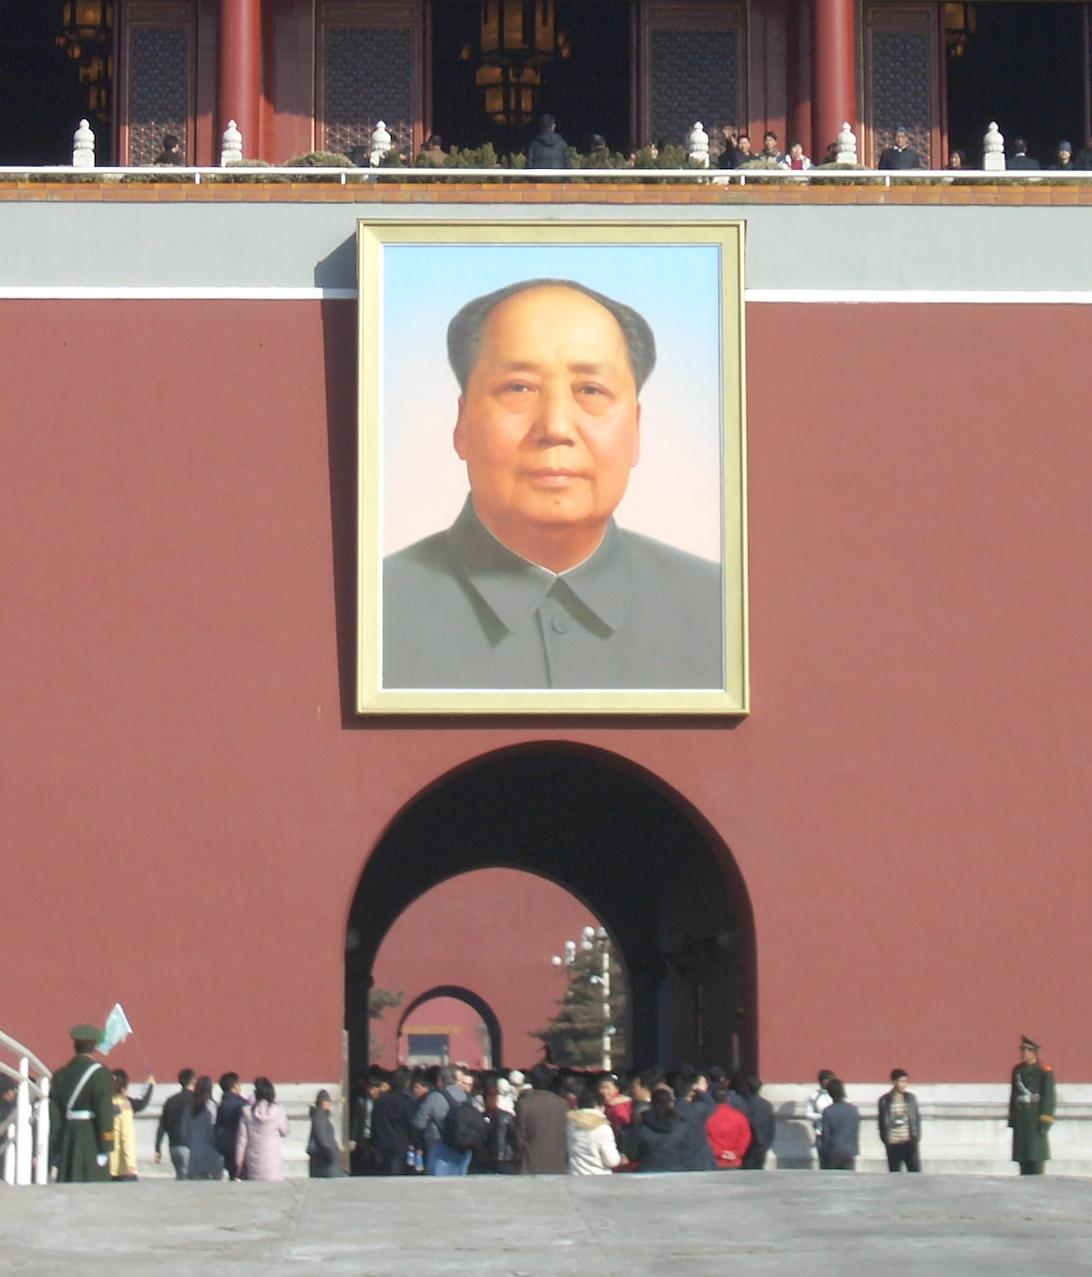 https://upload.wikimedia.org/wikipedia/commons/6/63/Tiananmen_Mao.jpg